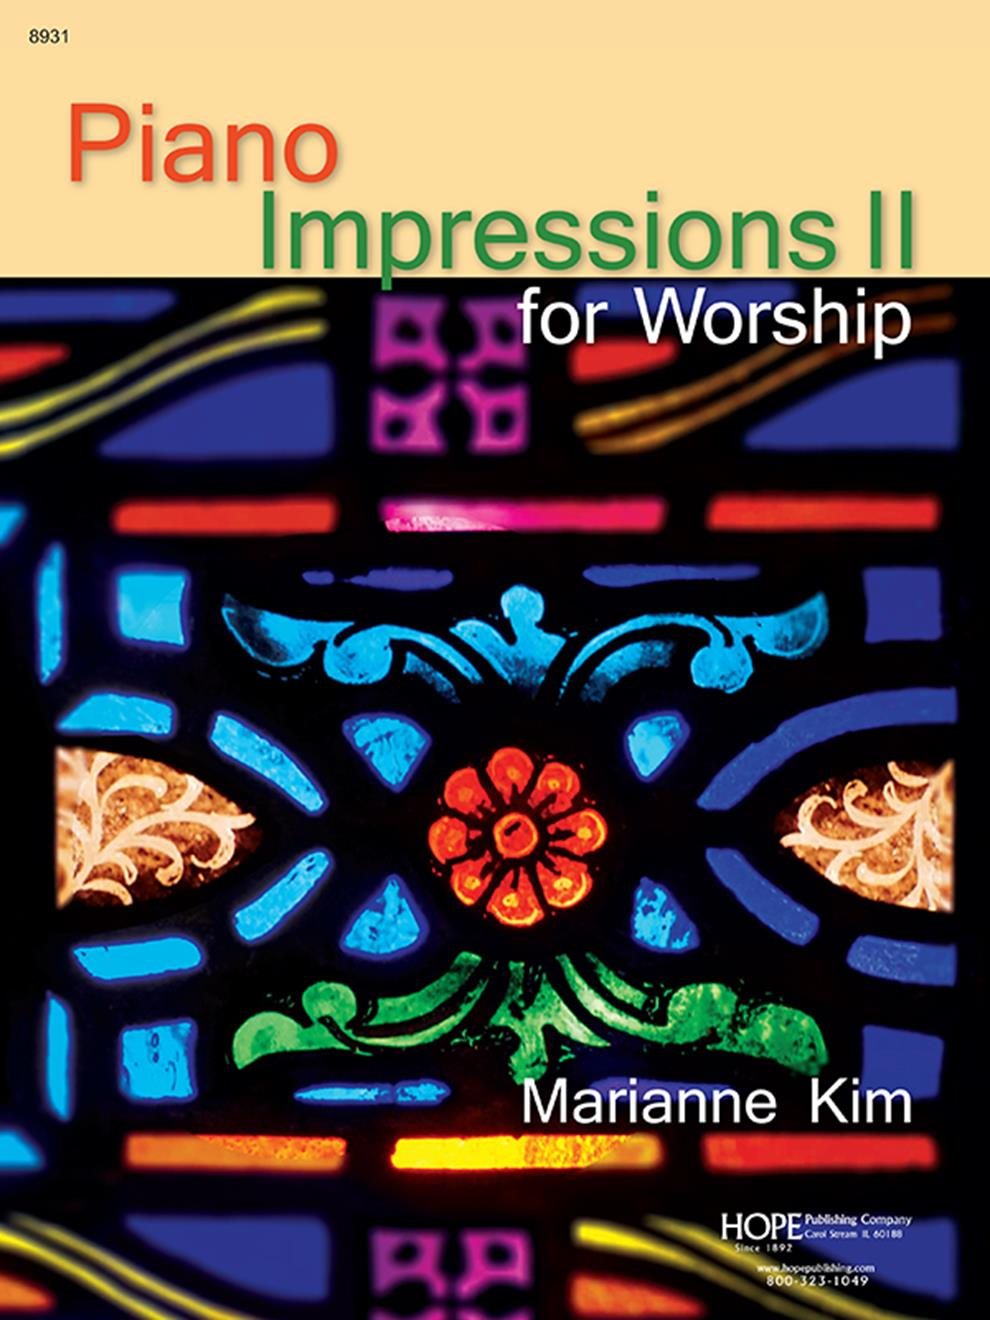 Piano Impressions for Worship II